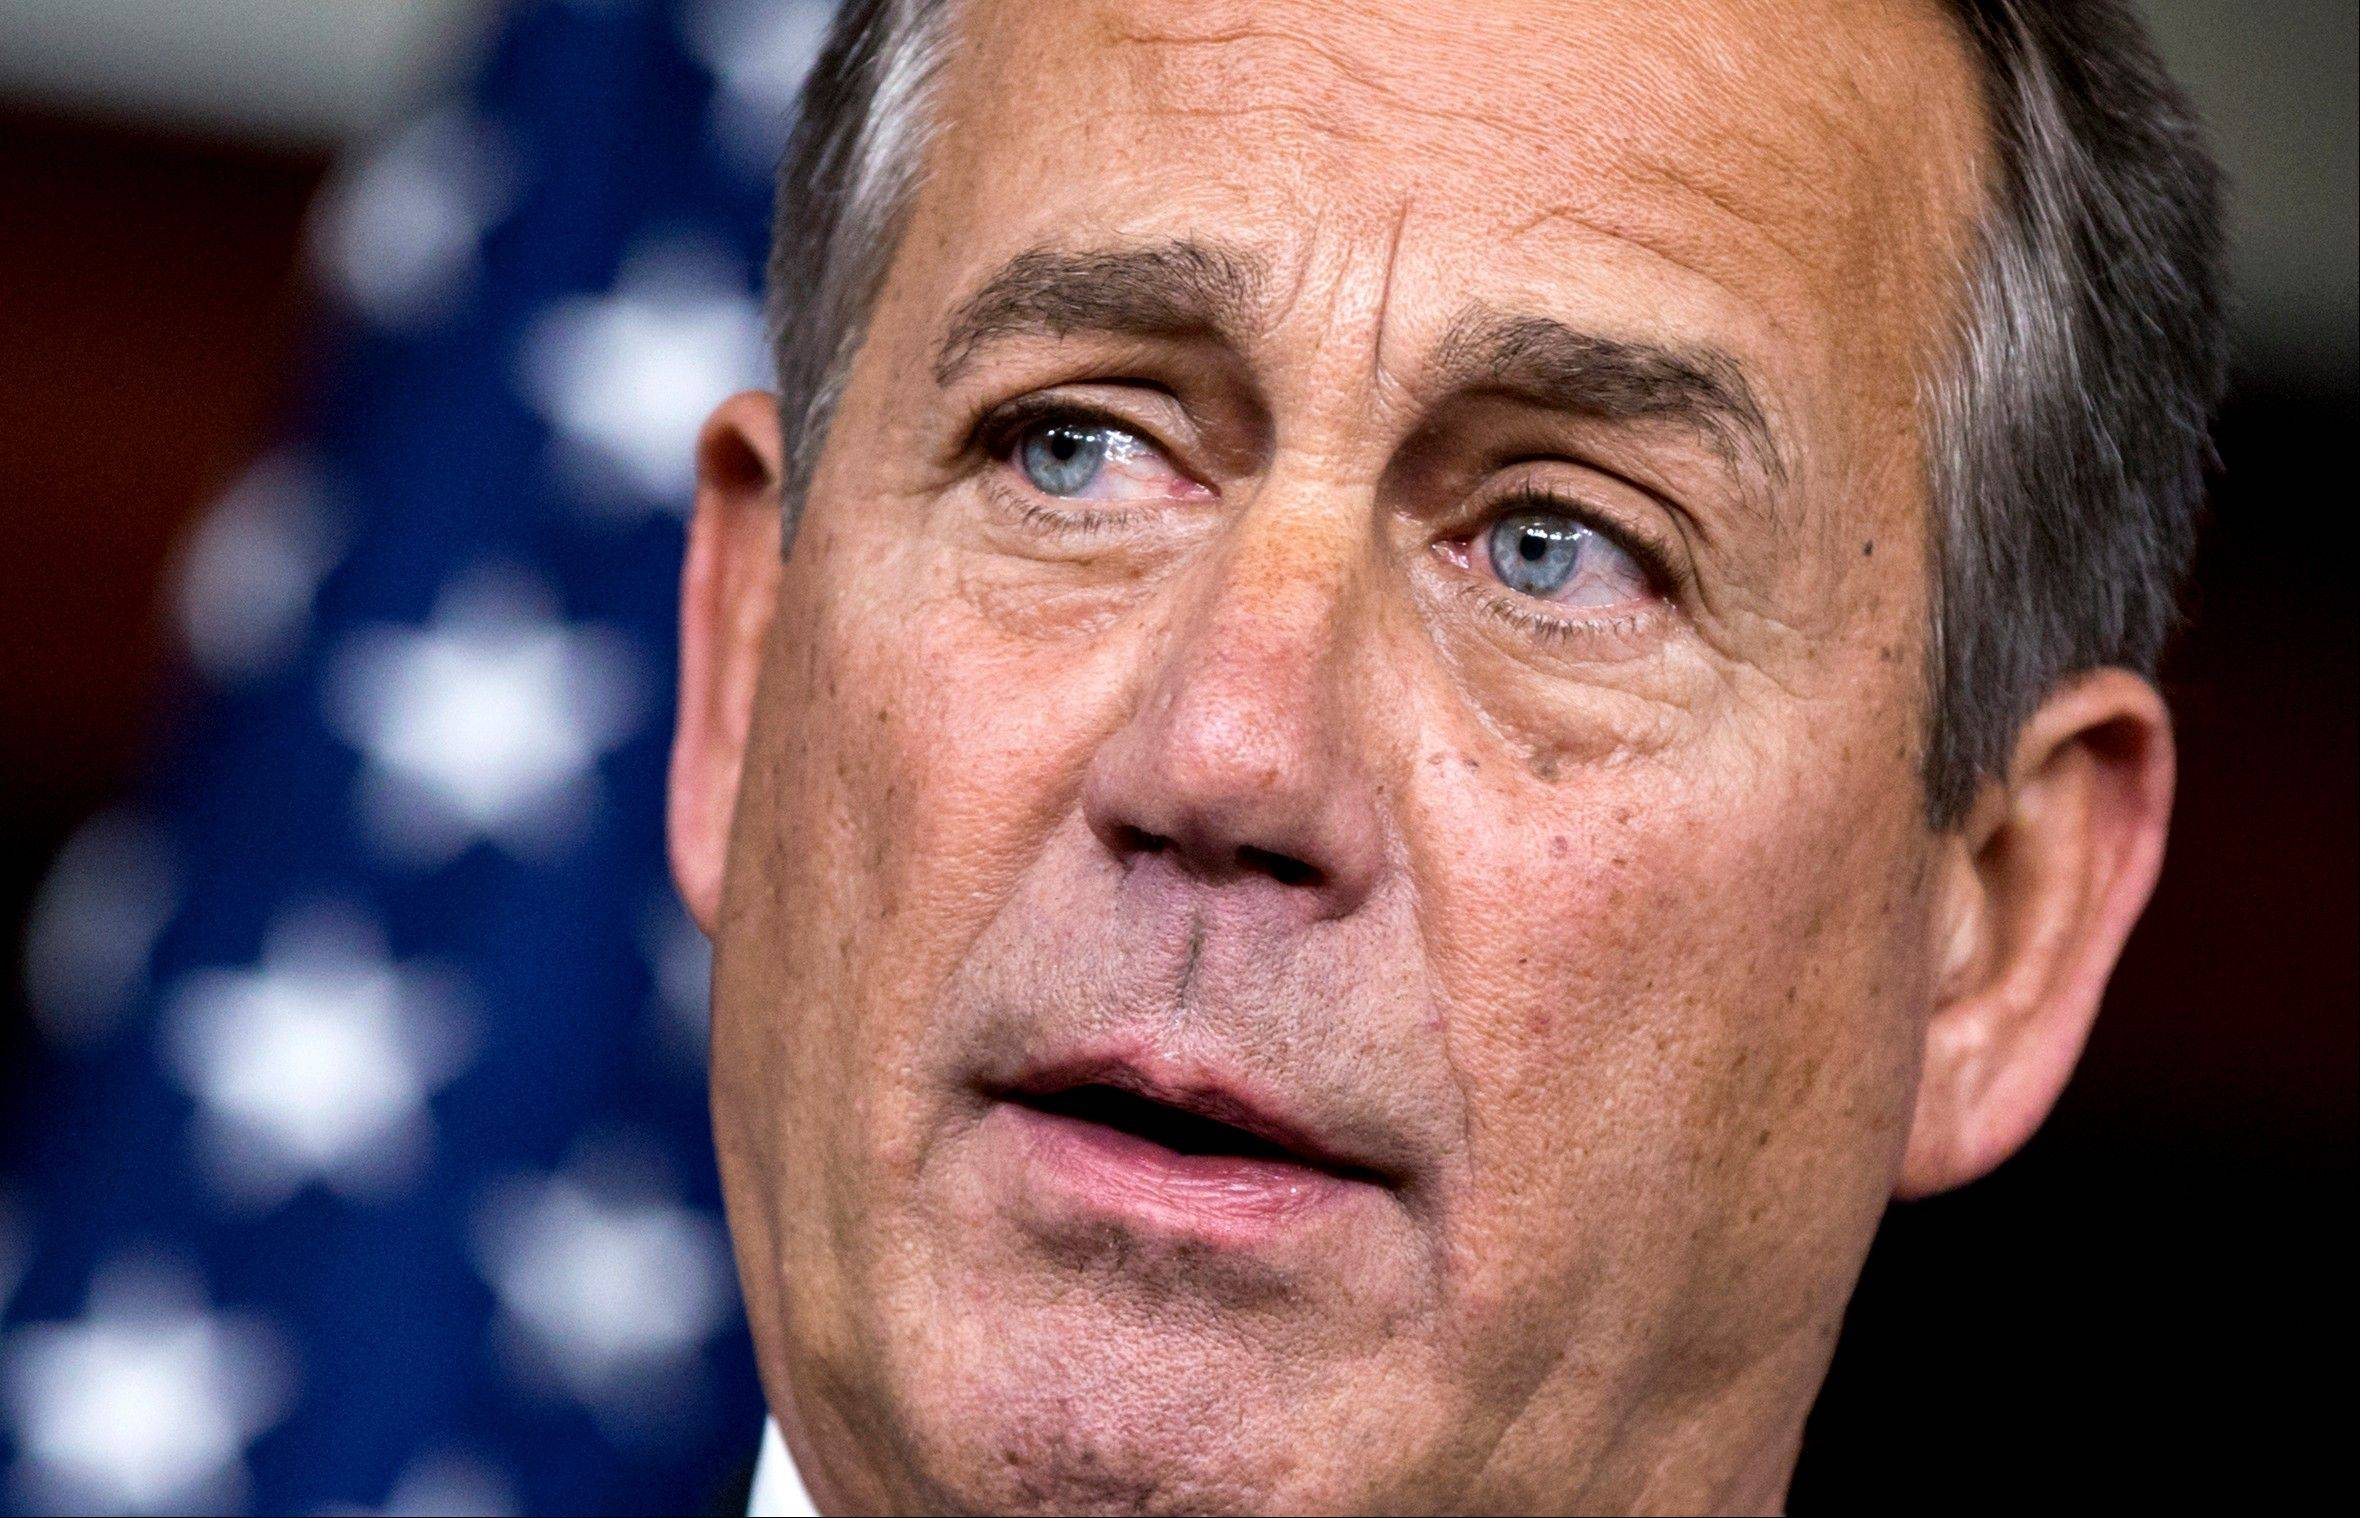 House Speaker John Boehner, an Ohio Republican, has proposed raising the top rate for earners making more than $1 million, a person familiar with the negotiations said.